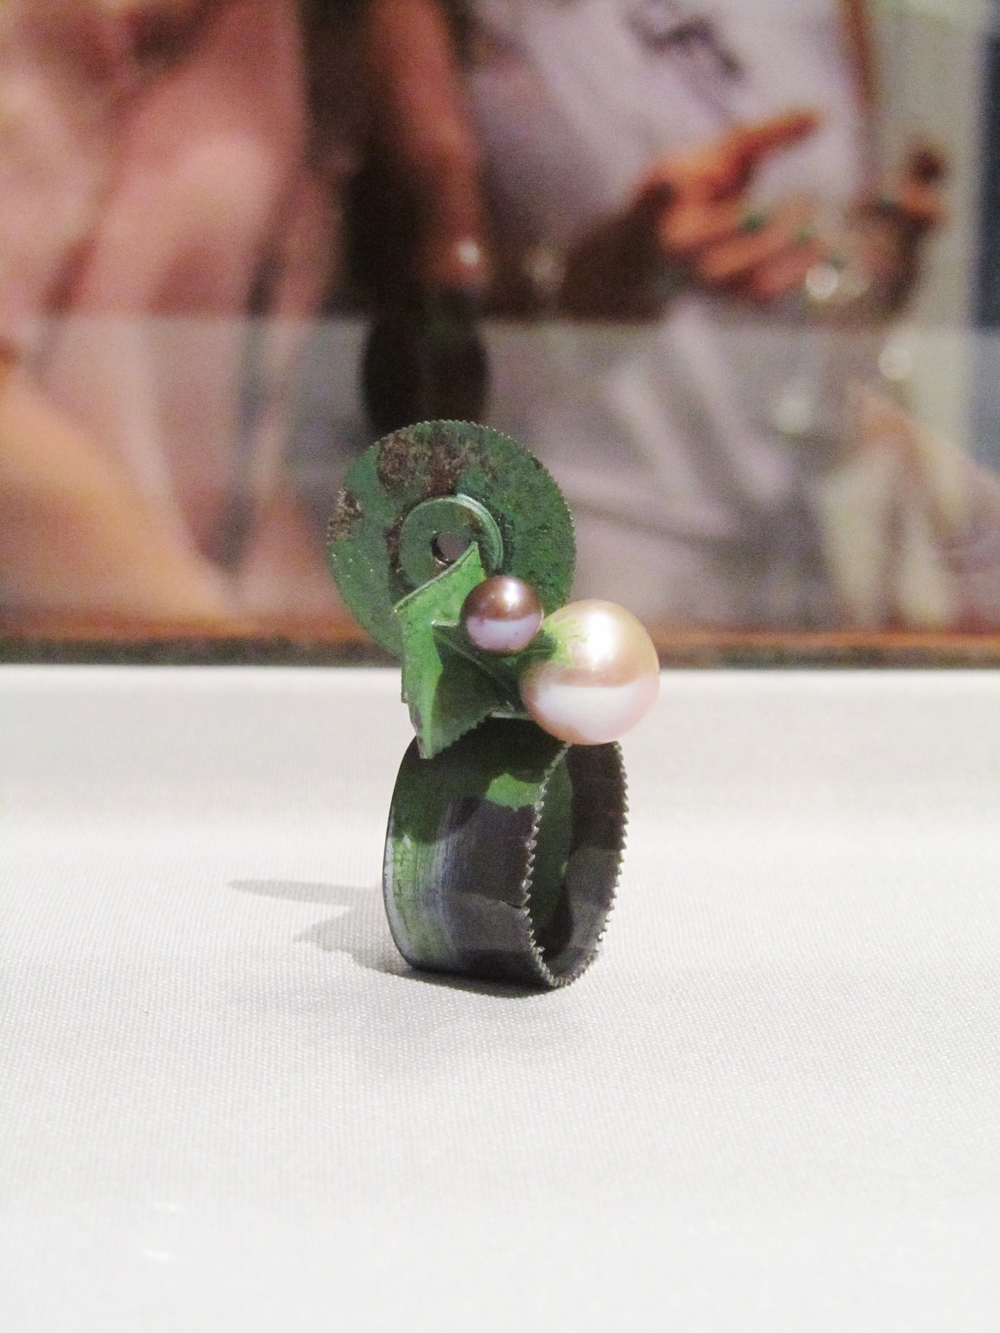 Pearls and saw blades, brought together in a Schobinger ring at Manchester Art Gallery.